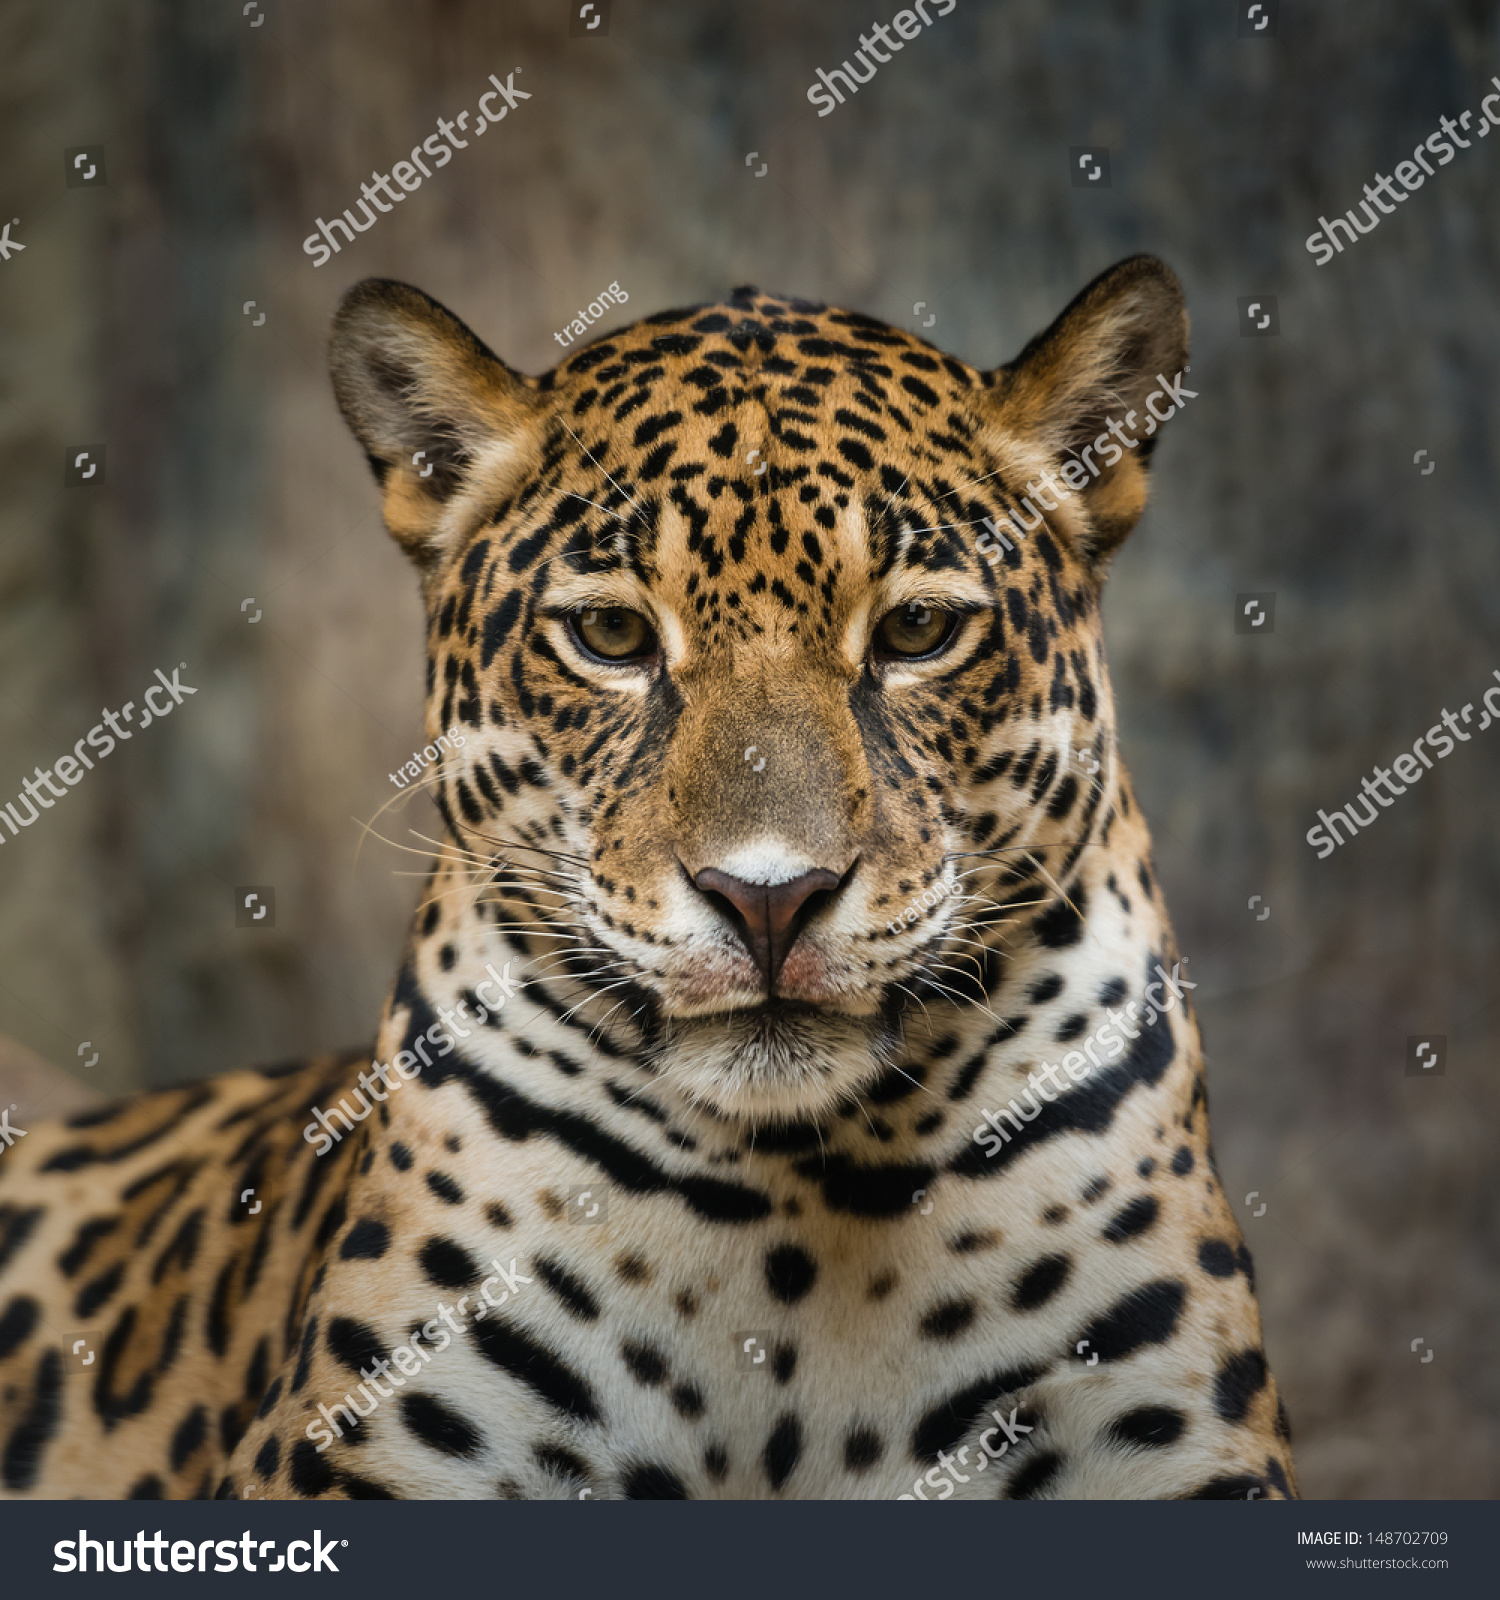 Ferocious Jaguar: Jaguar Stock Photo 148702709 : Shutterstock